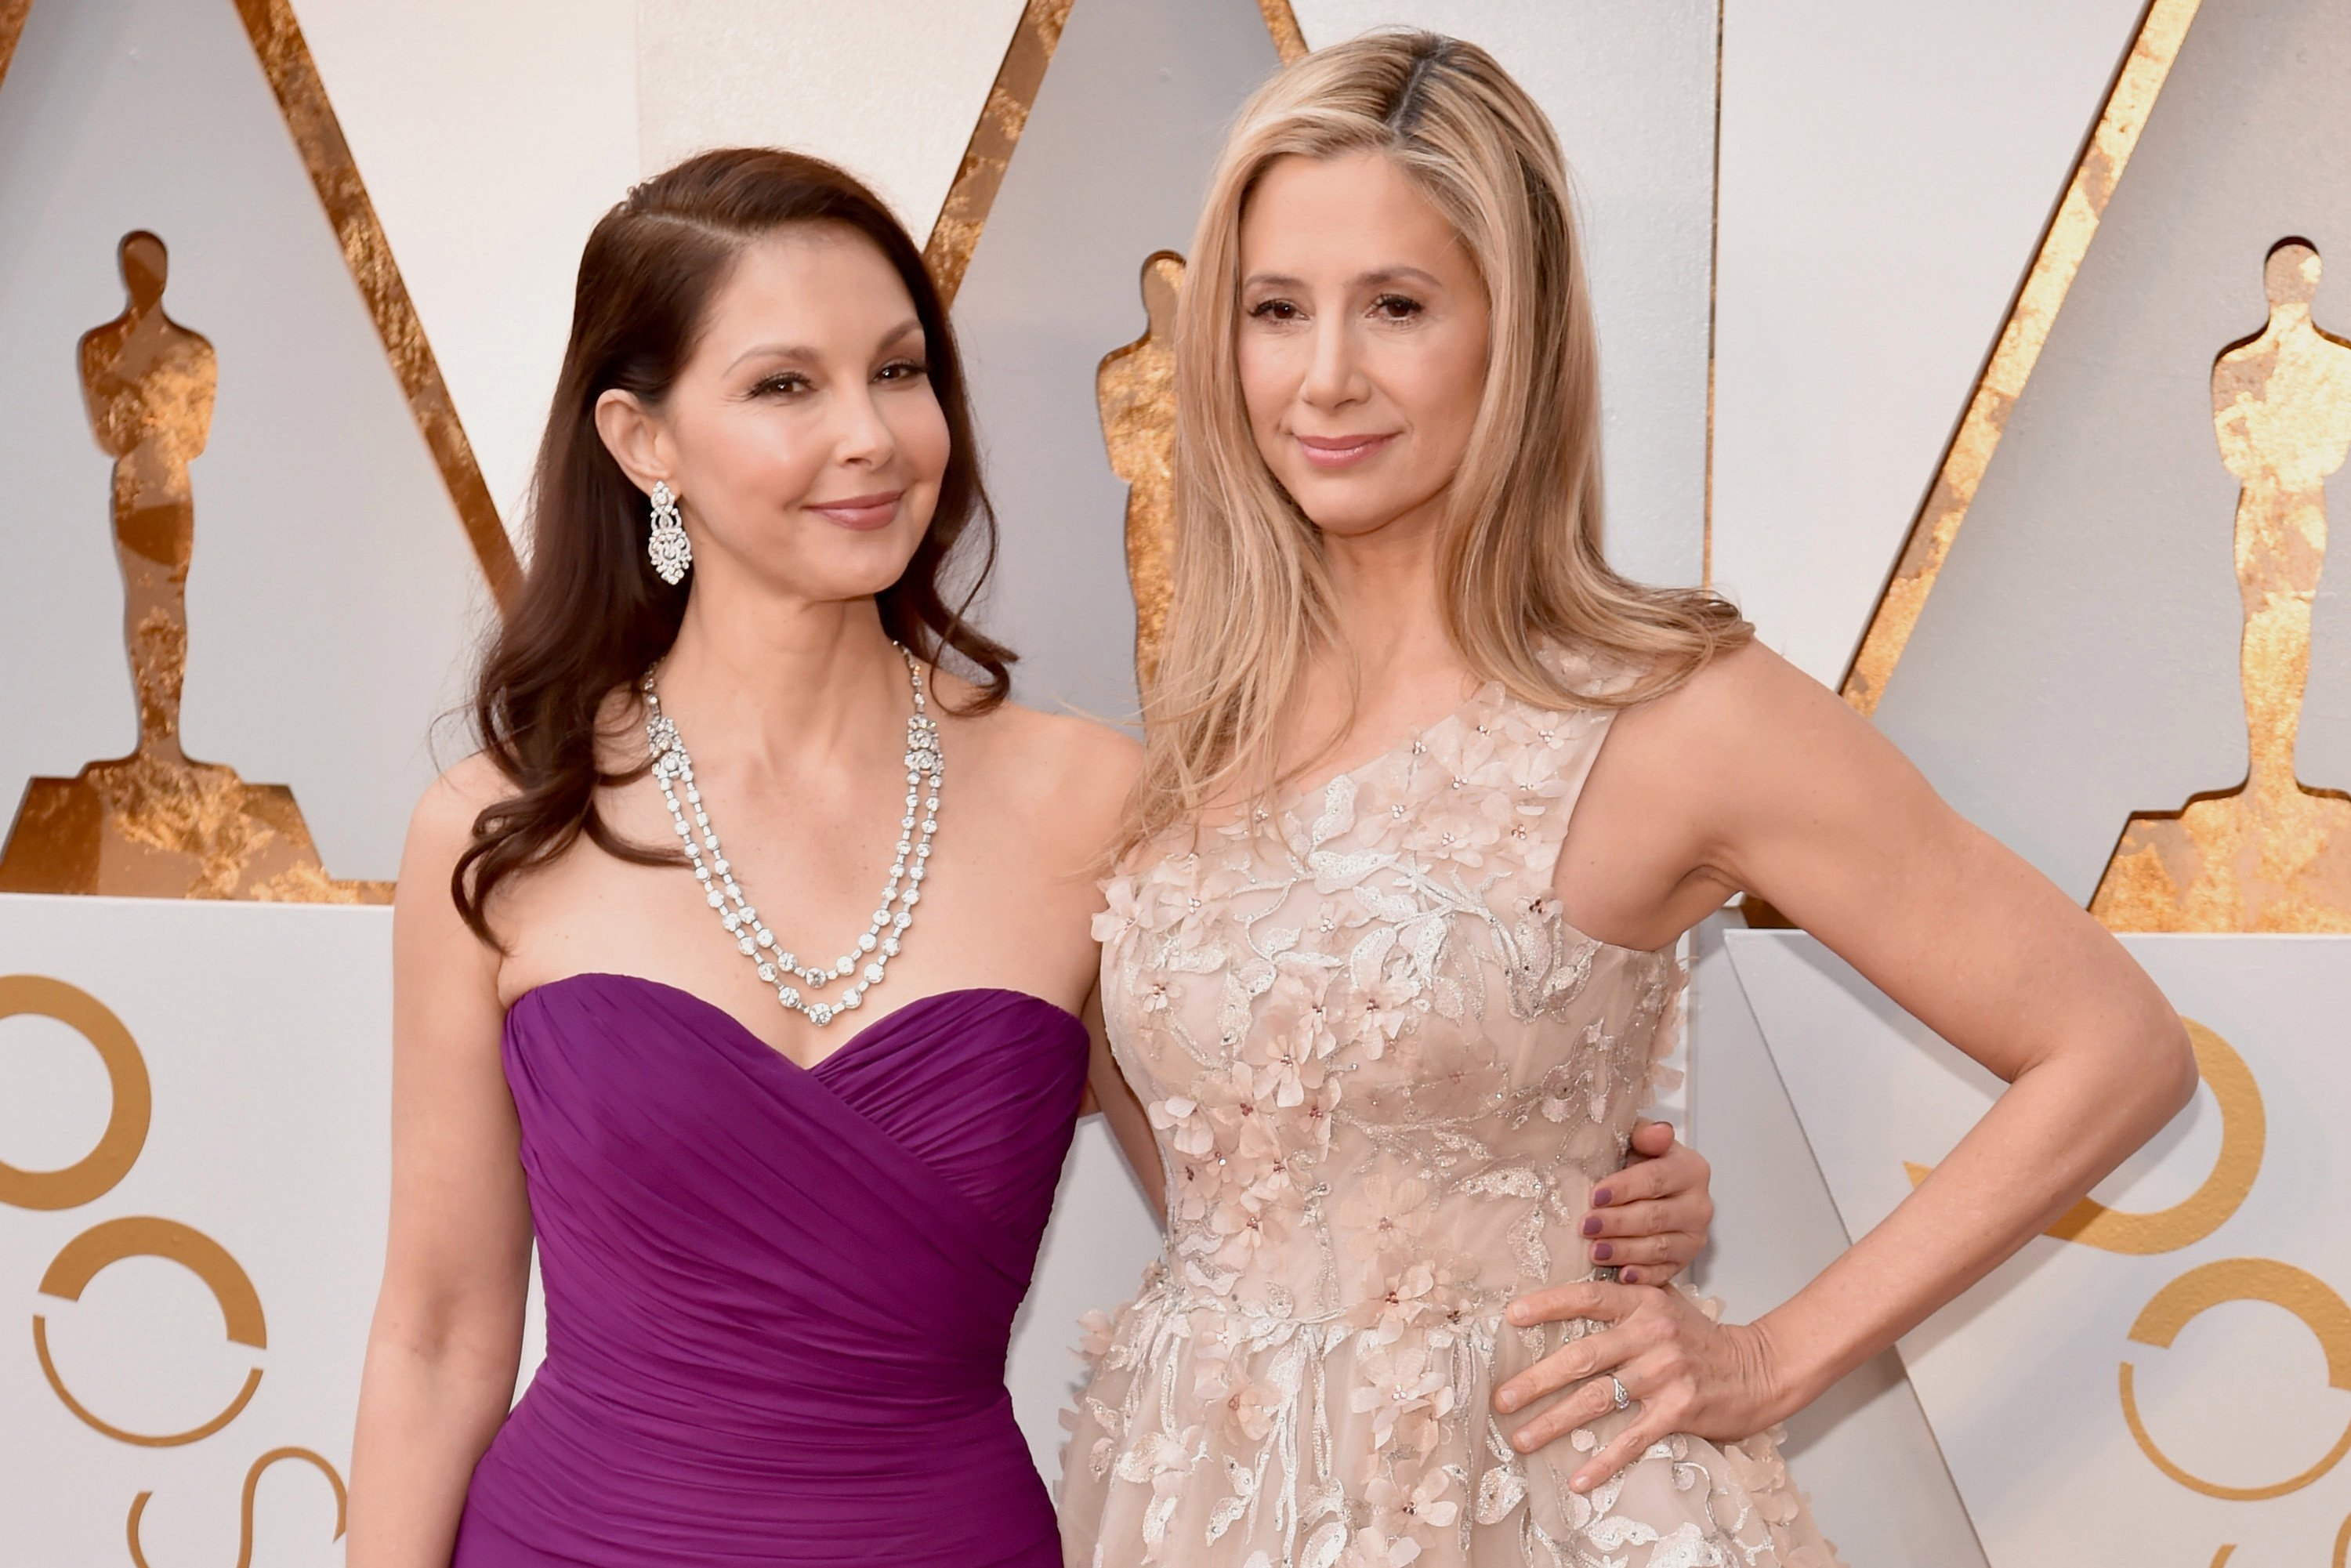 'Blacklisted' Ashley Judd and Mira Sorvino arrive at Oscars together